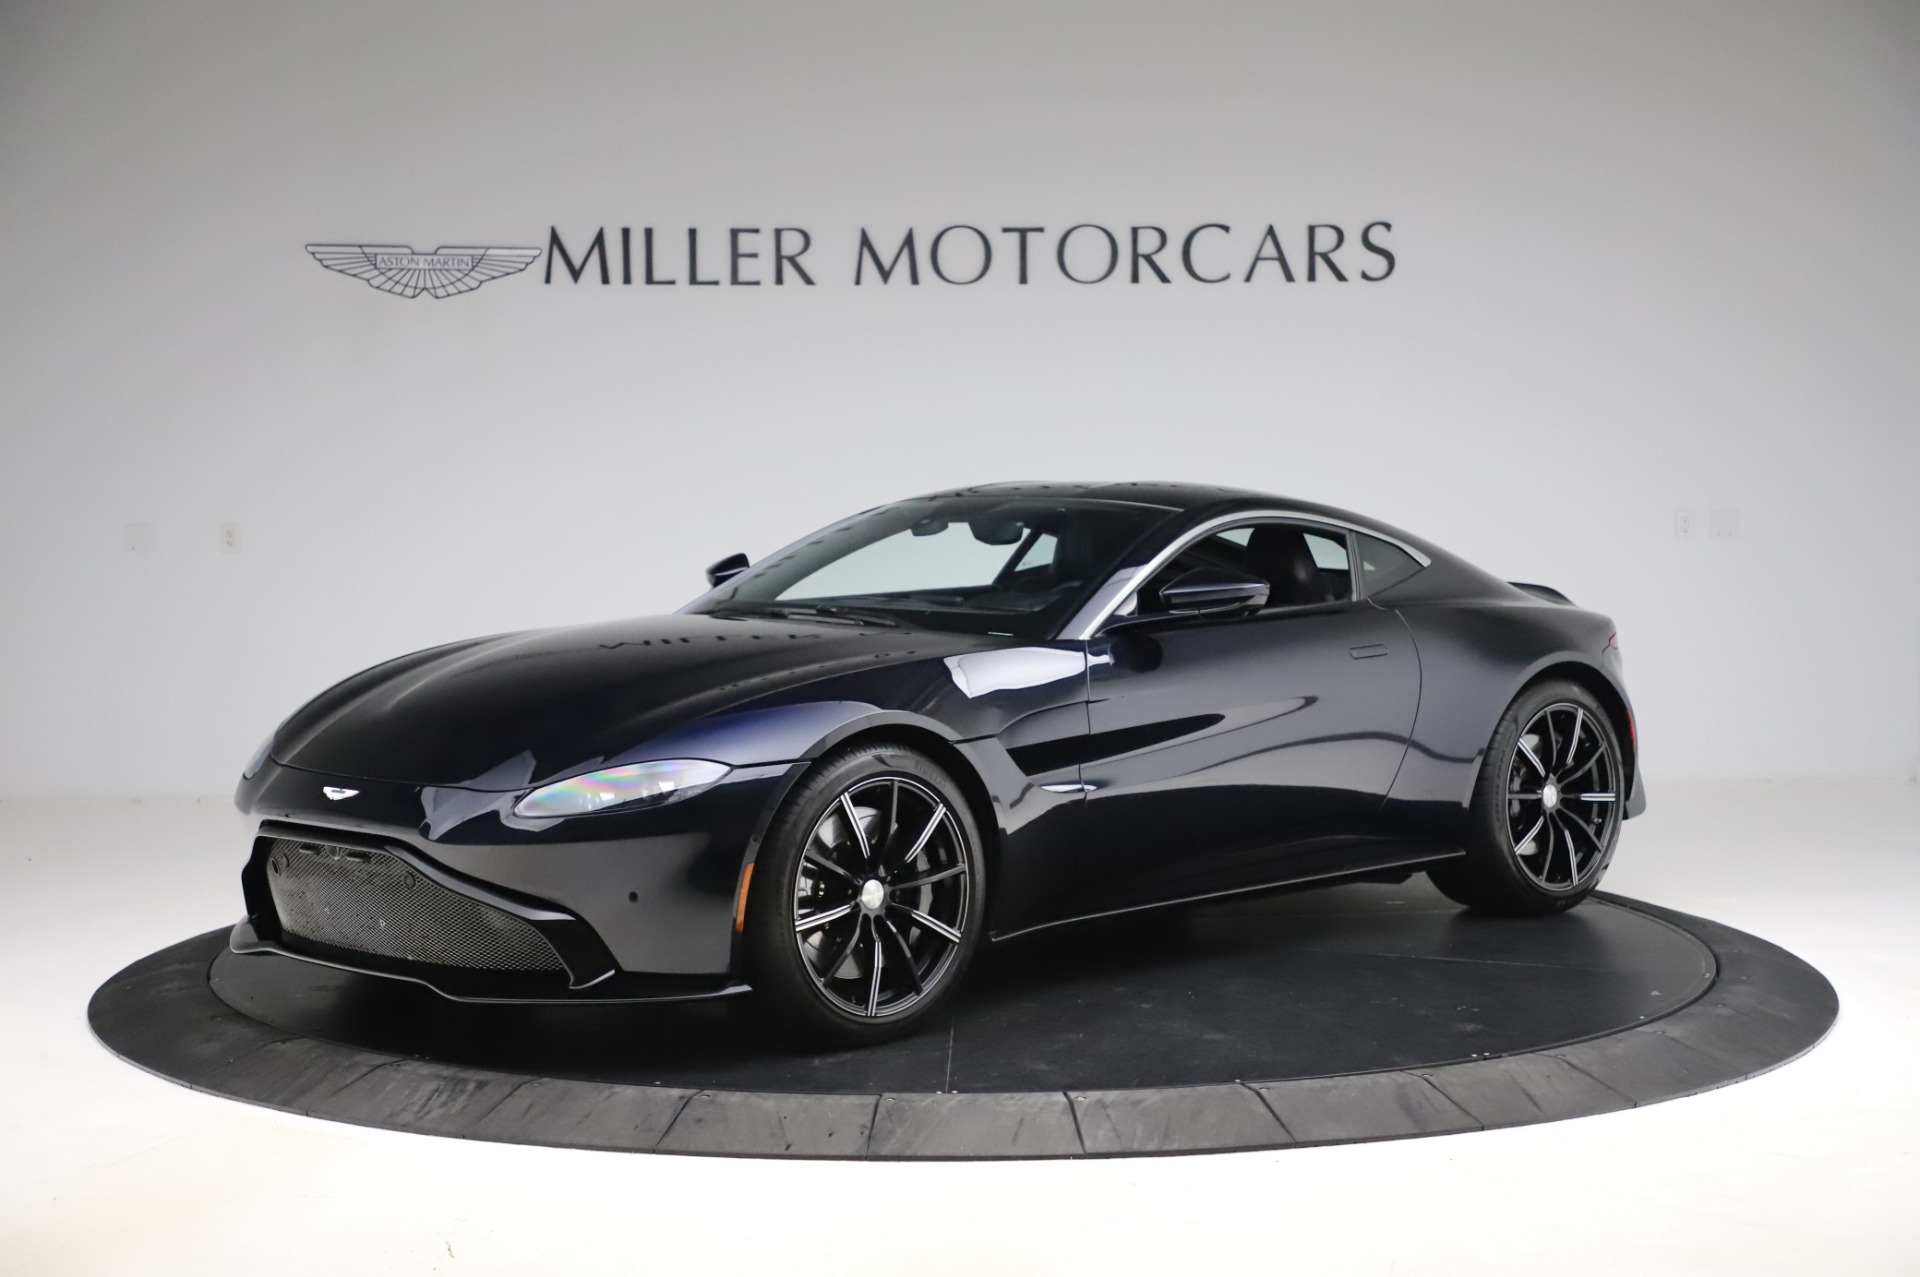 Used 2019 Aston Martin Vantage for sale $127,900 at Bentley Greenwich in Greenwich CT 06830 1